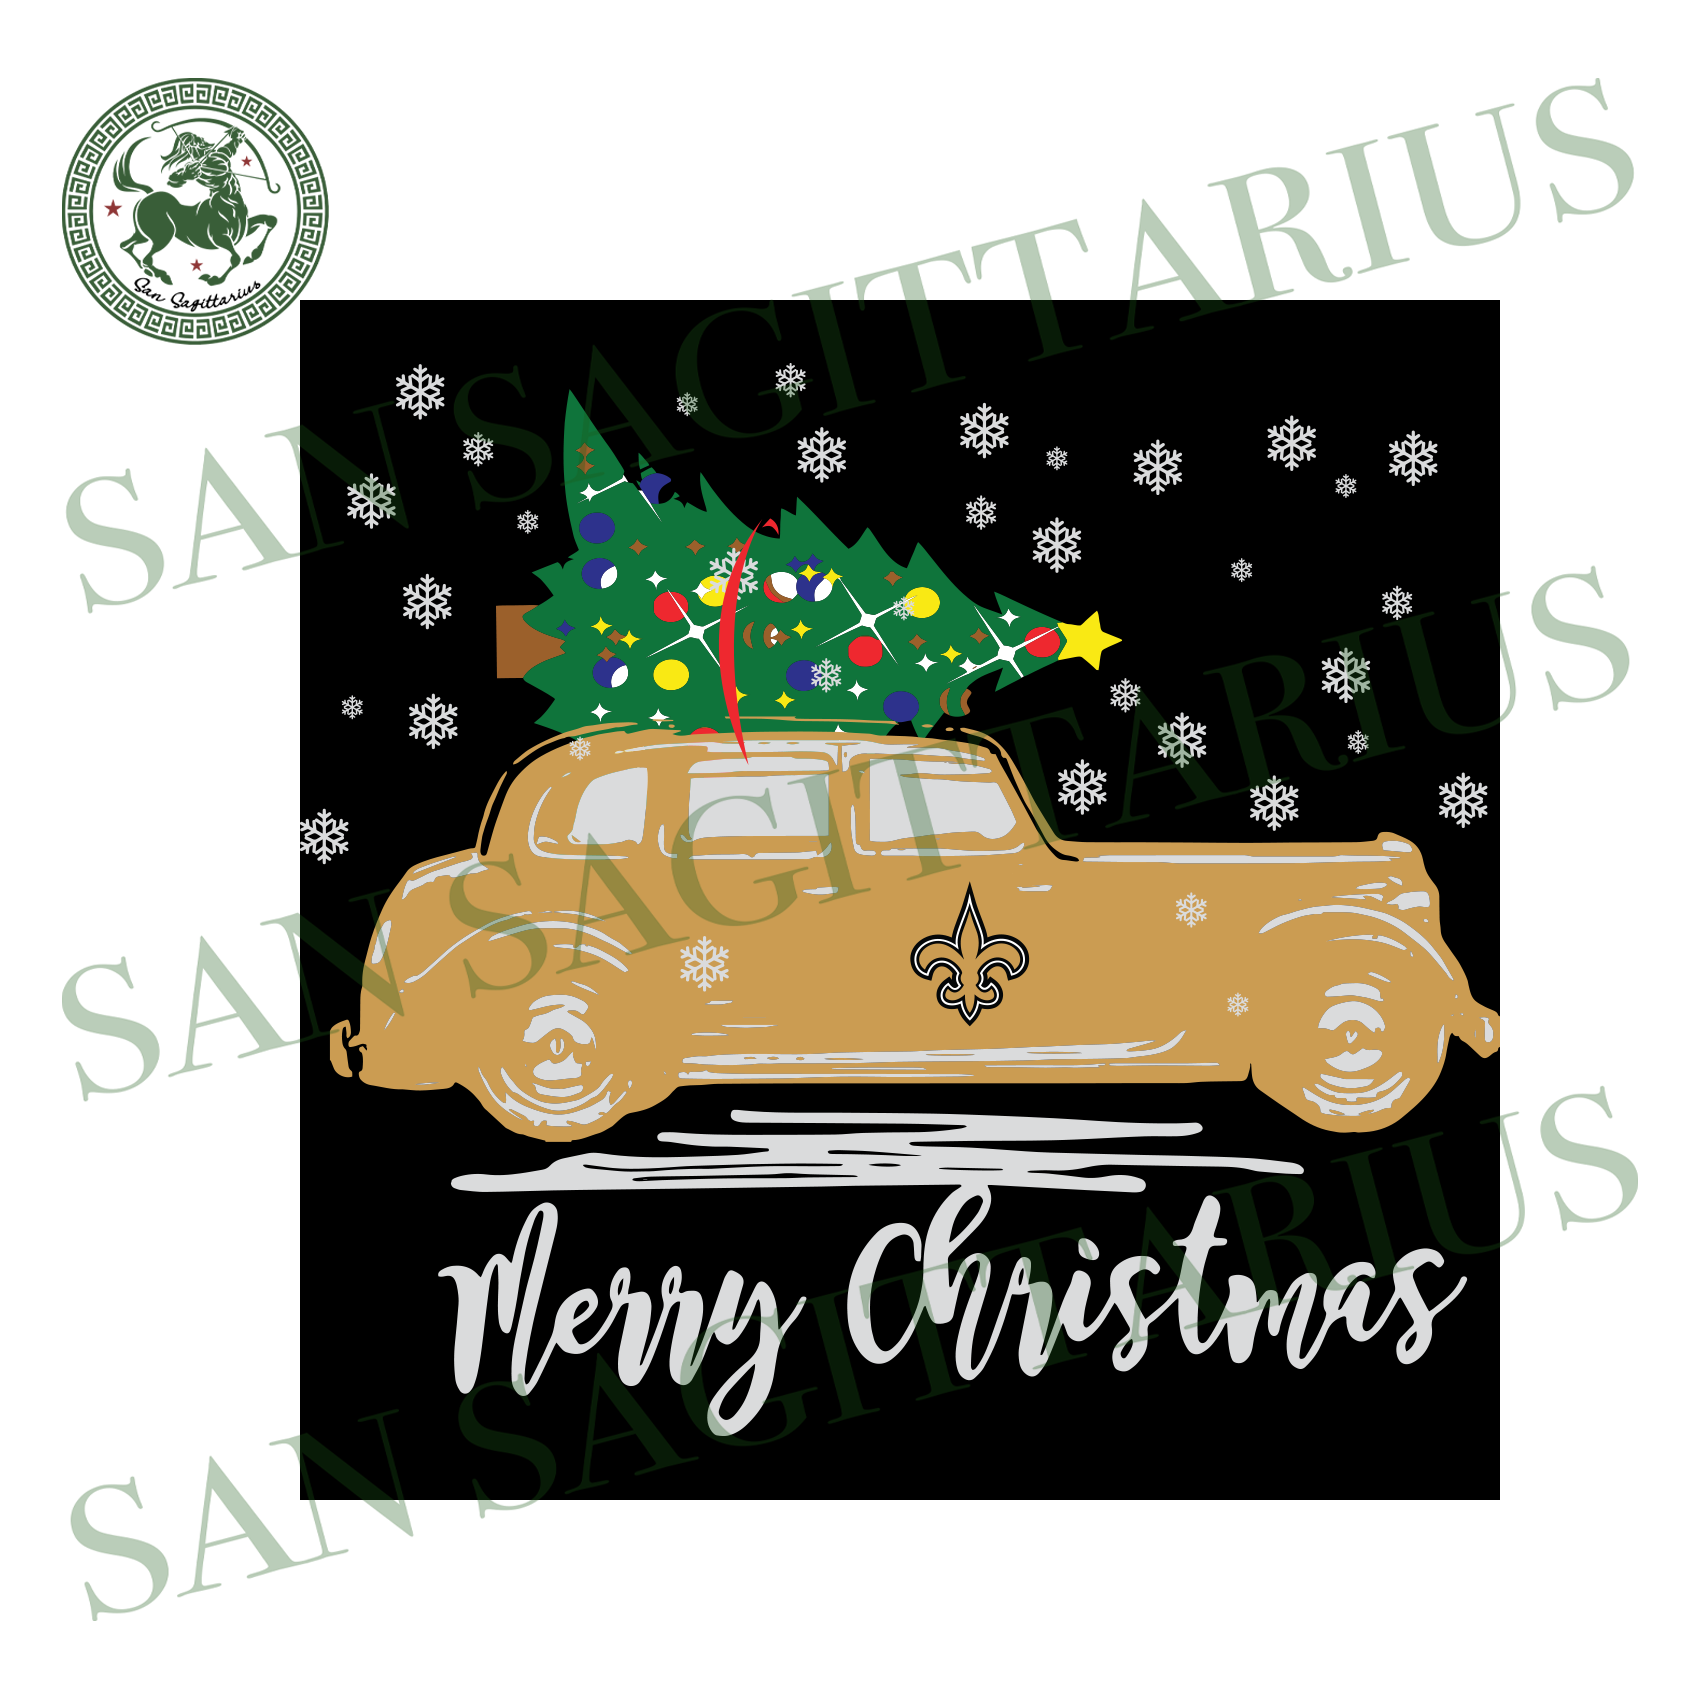 Christmas With New Orleans Saints, Sport Svg, Christmas Svg, New Orleans Saints Svg, NFL Sport Svg, New Orleans Saints NFL Svg, New Orleans Saints Shirt, New Orleans Saints Gift, Football Svg